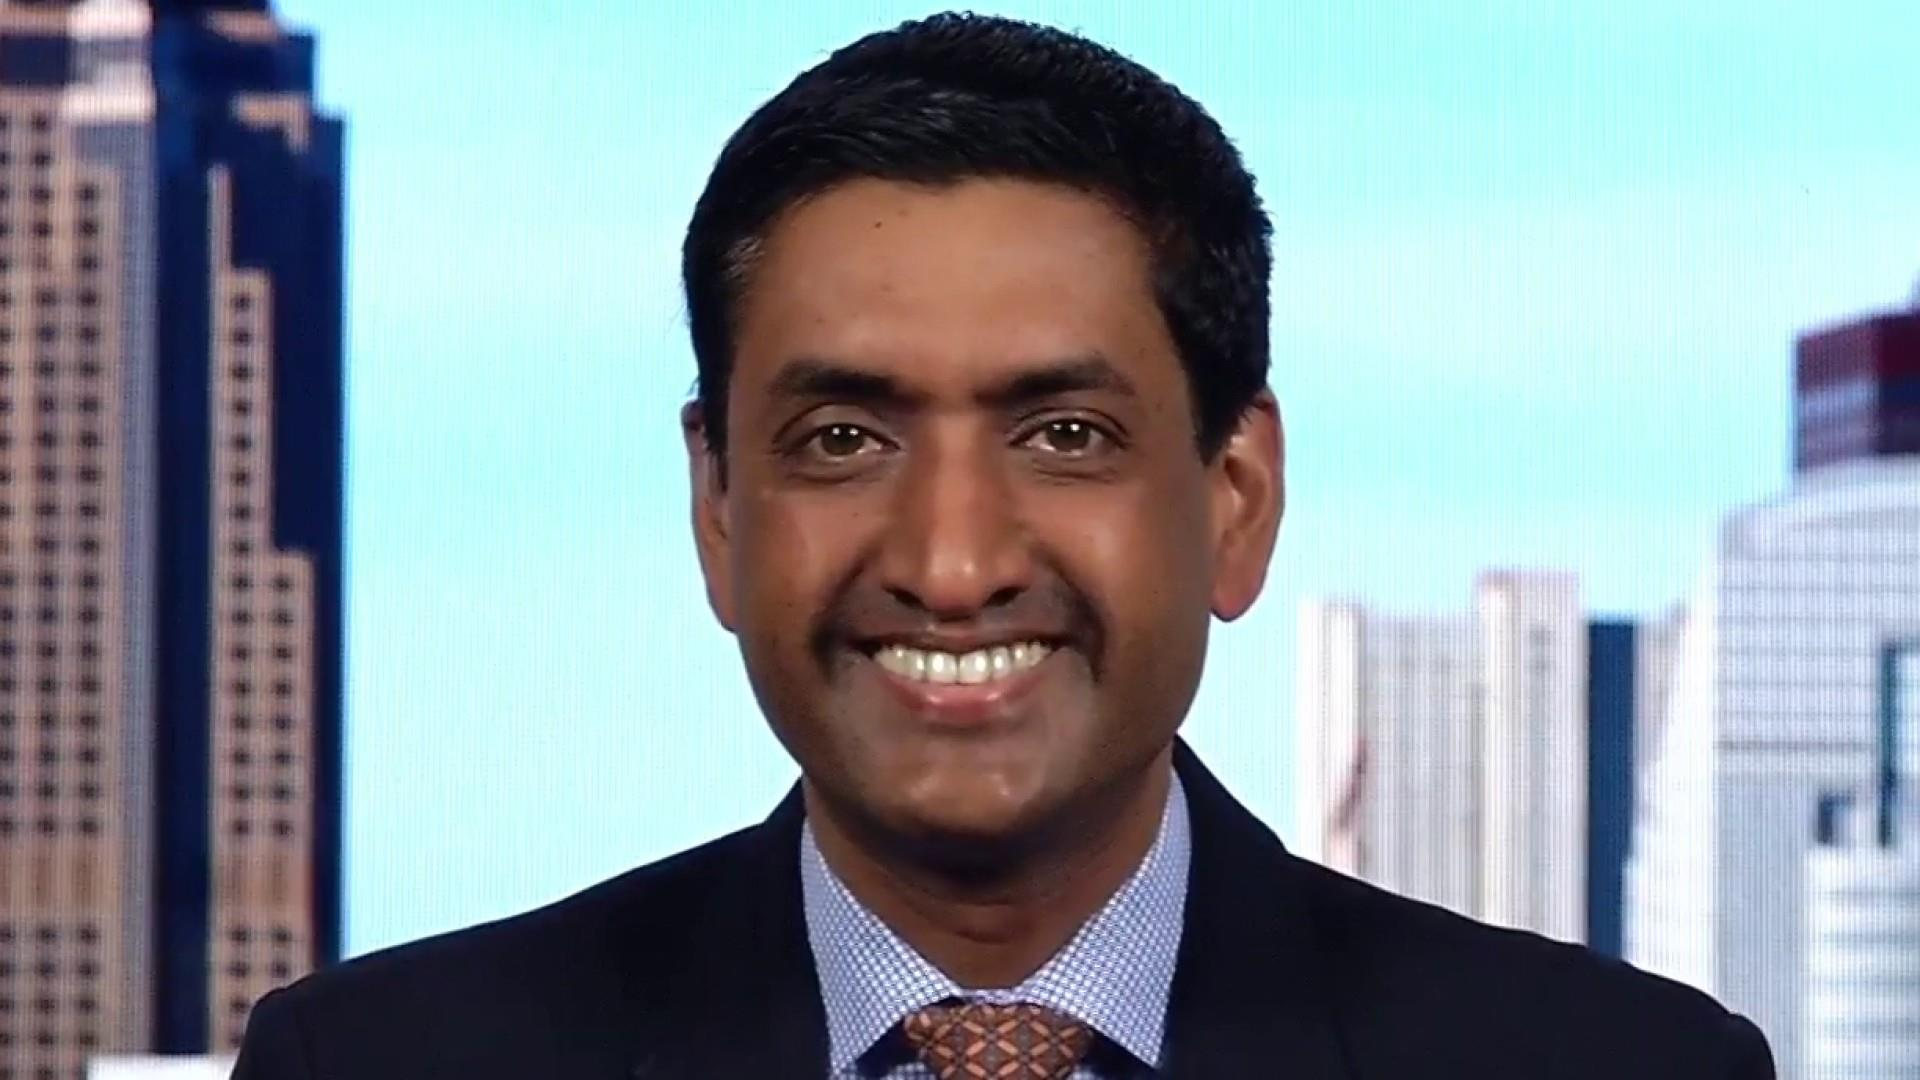 Rep. Khanna on reports Trump whistleblowers could be multiple